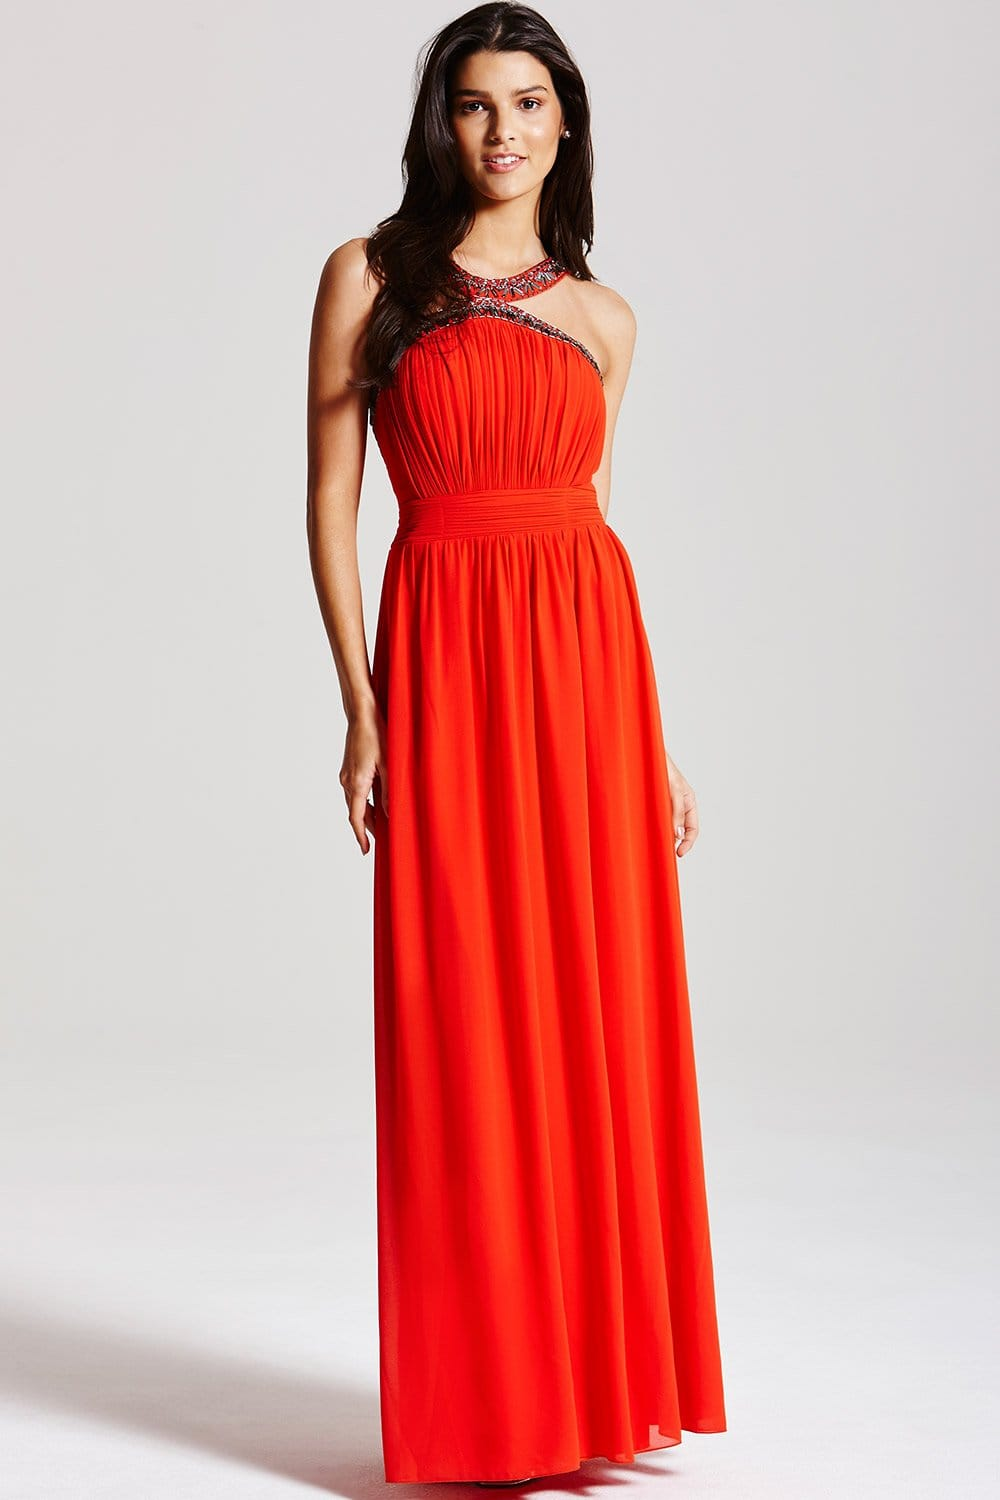 A professional and trusted global online shop. Ever-pretty provide popular & sexy evening, prom dress, The lowest prices and shipping on a global scale is the best choice!